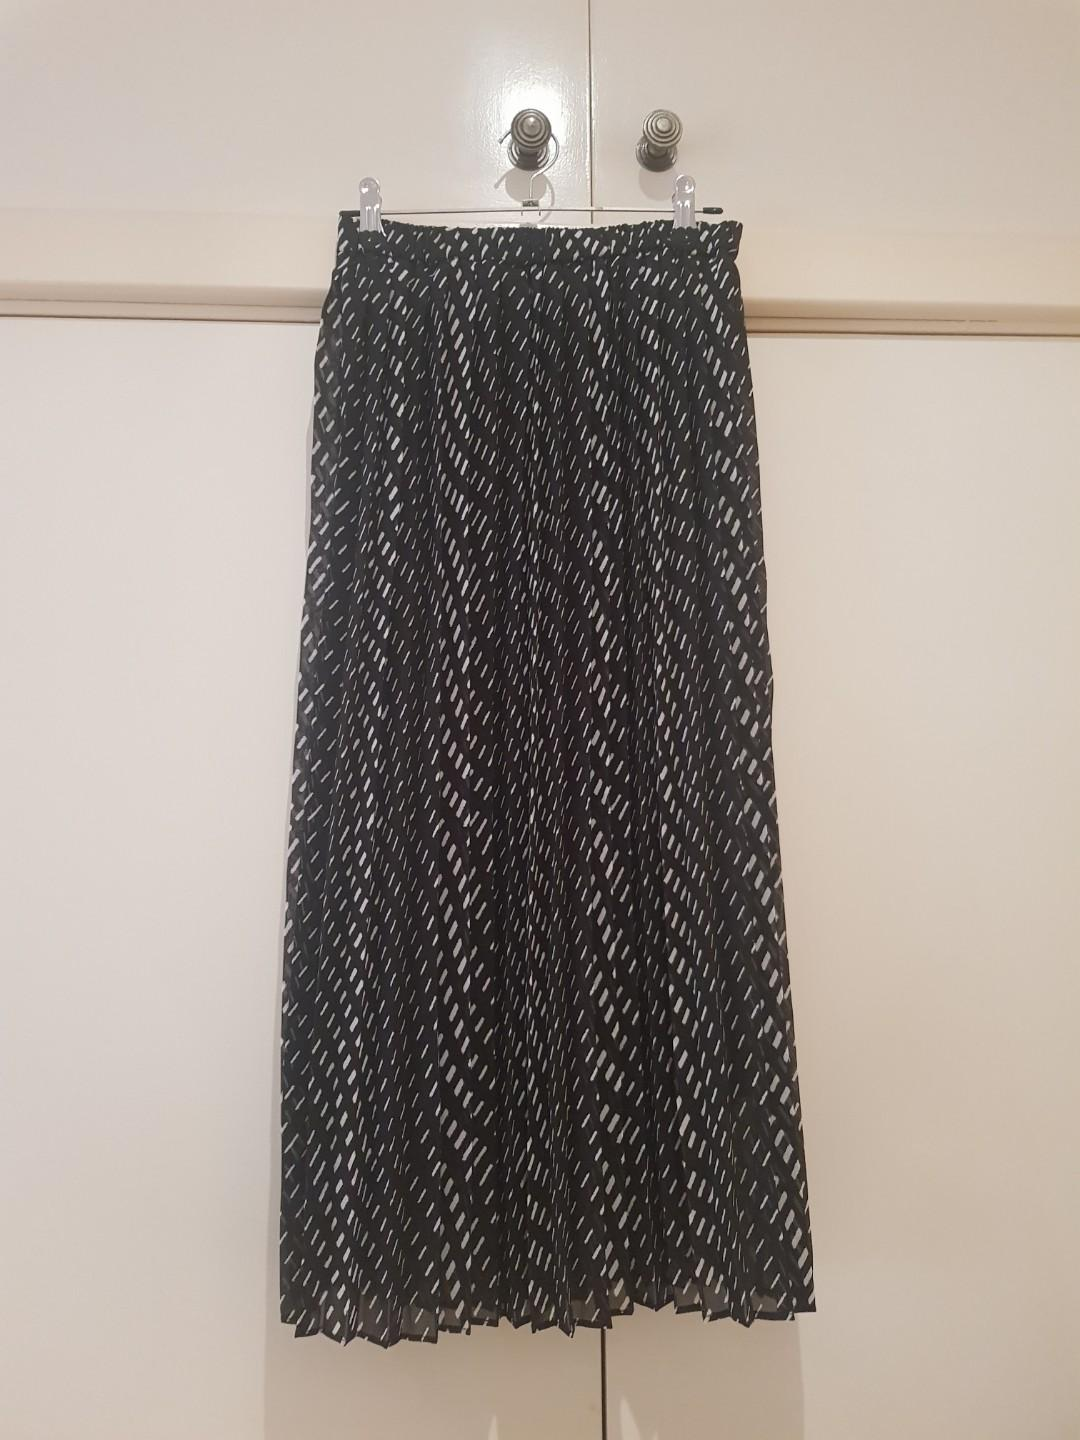 BNWOT Uniqlo Pleated Patterned Maxi Skirt Size XS/6